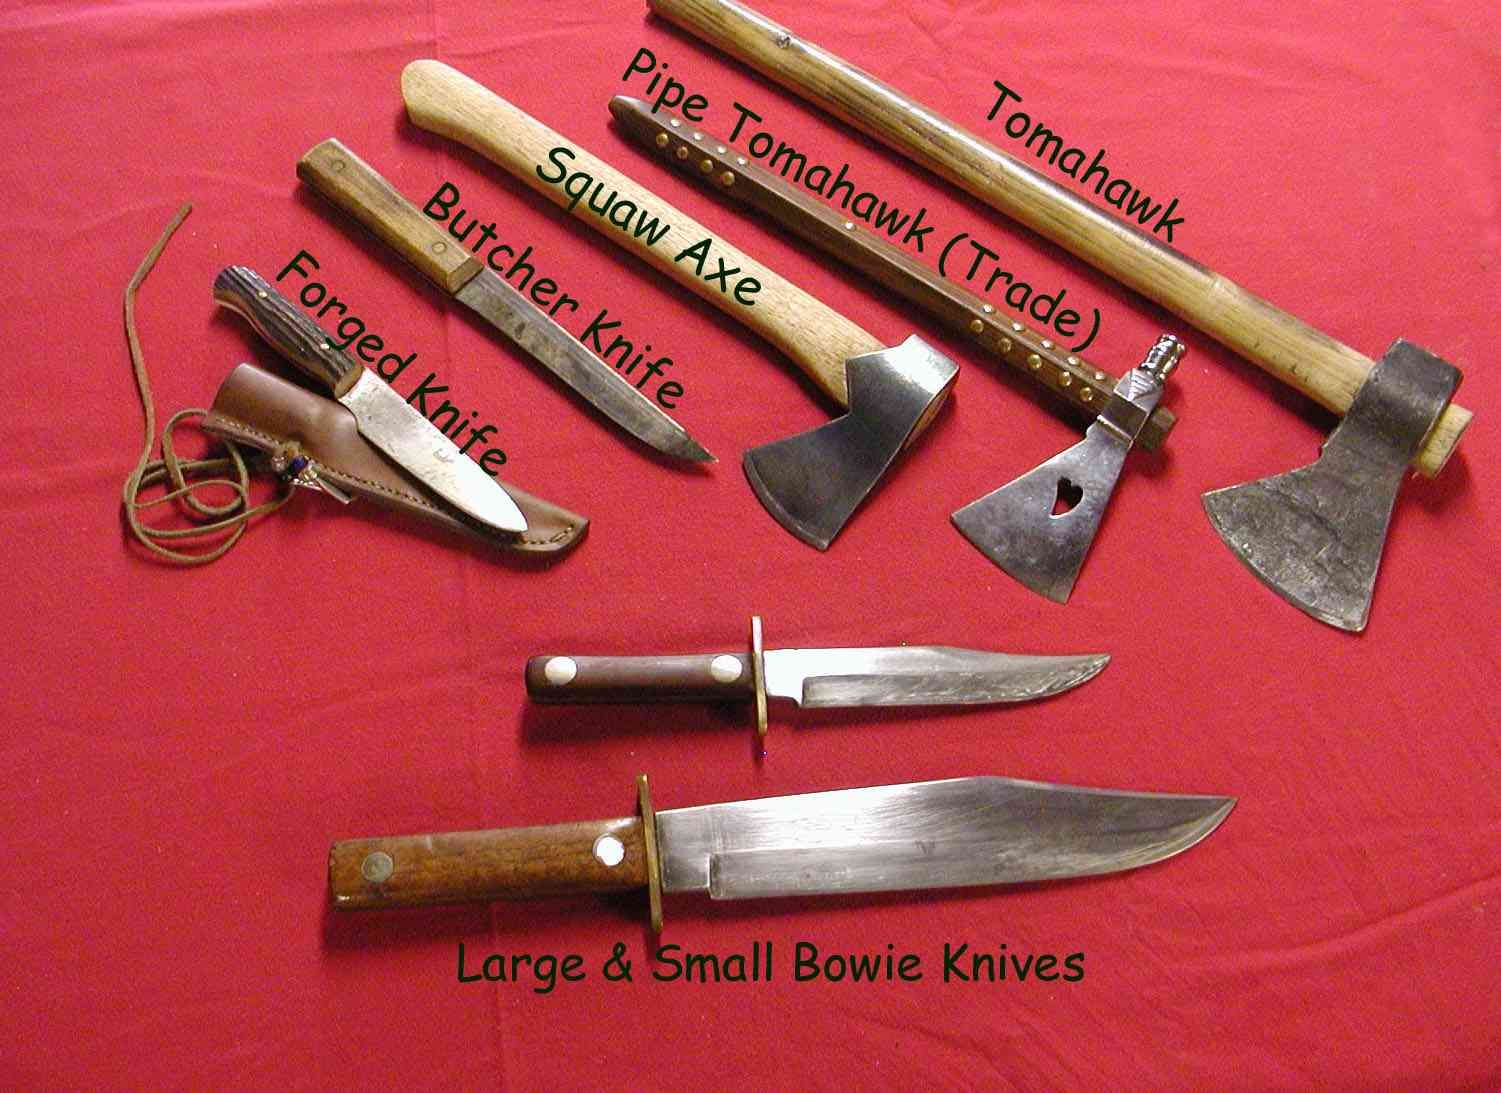 80 Raras Lujosas E Impresionantes Armas De Fuego Parte 2 further 151879417243 together with General Officers Black Leather Colt 45 Acp Holster together with Children Toy Wooden Sword furthermore German Wwi C96 Pistol Leather Harness Holster. on 18th century holster